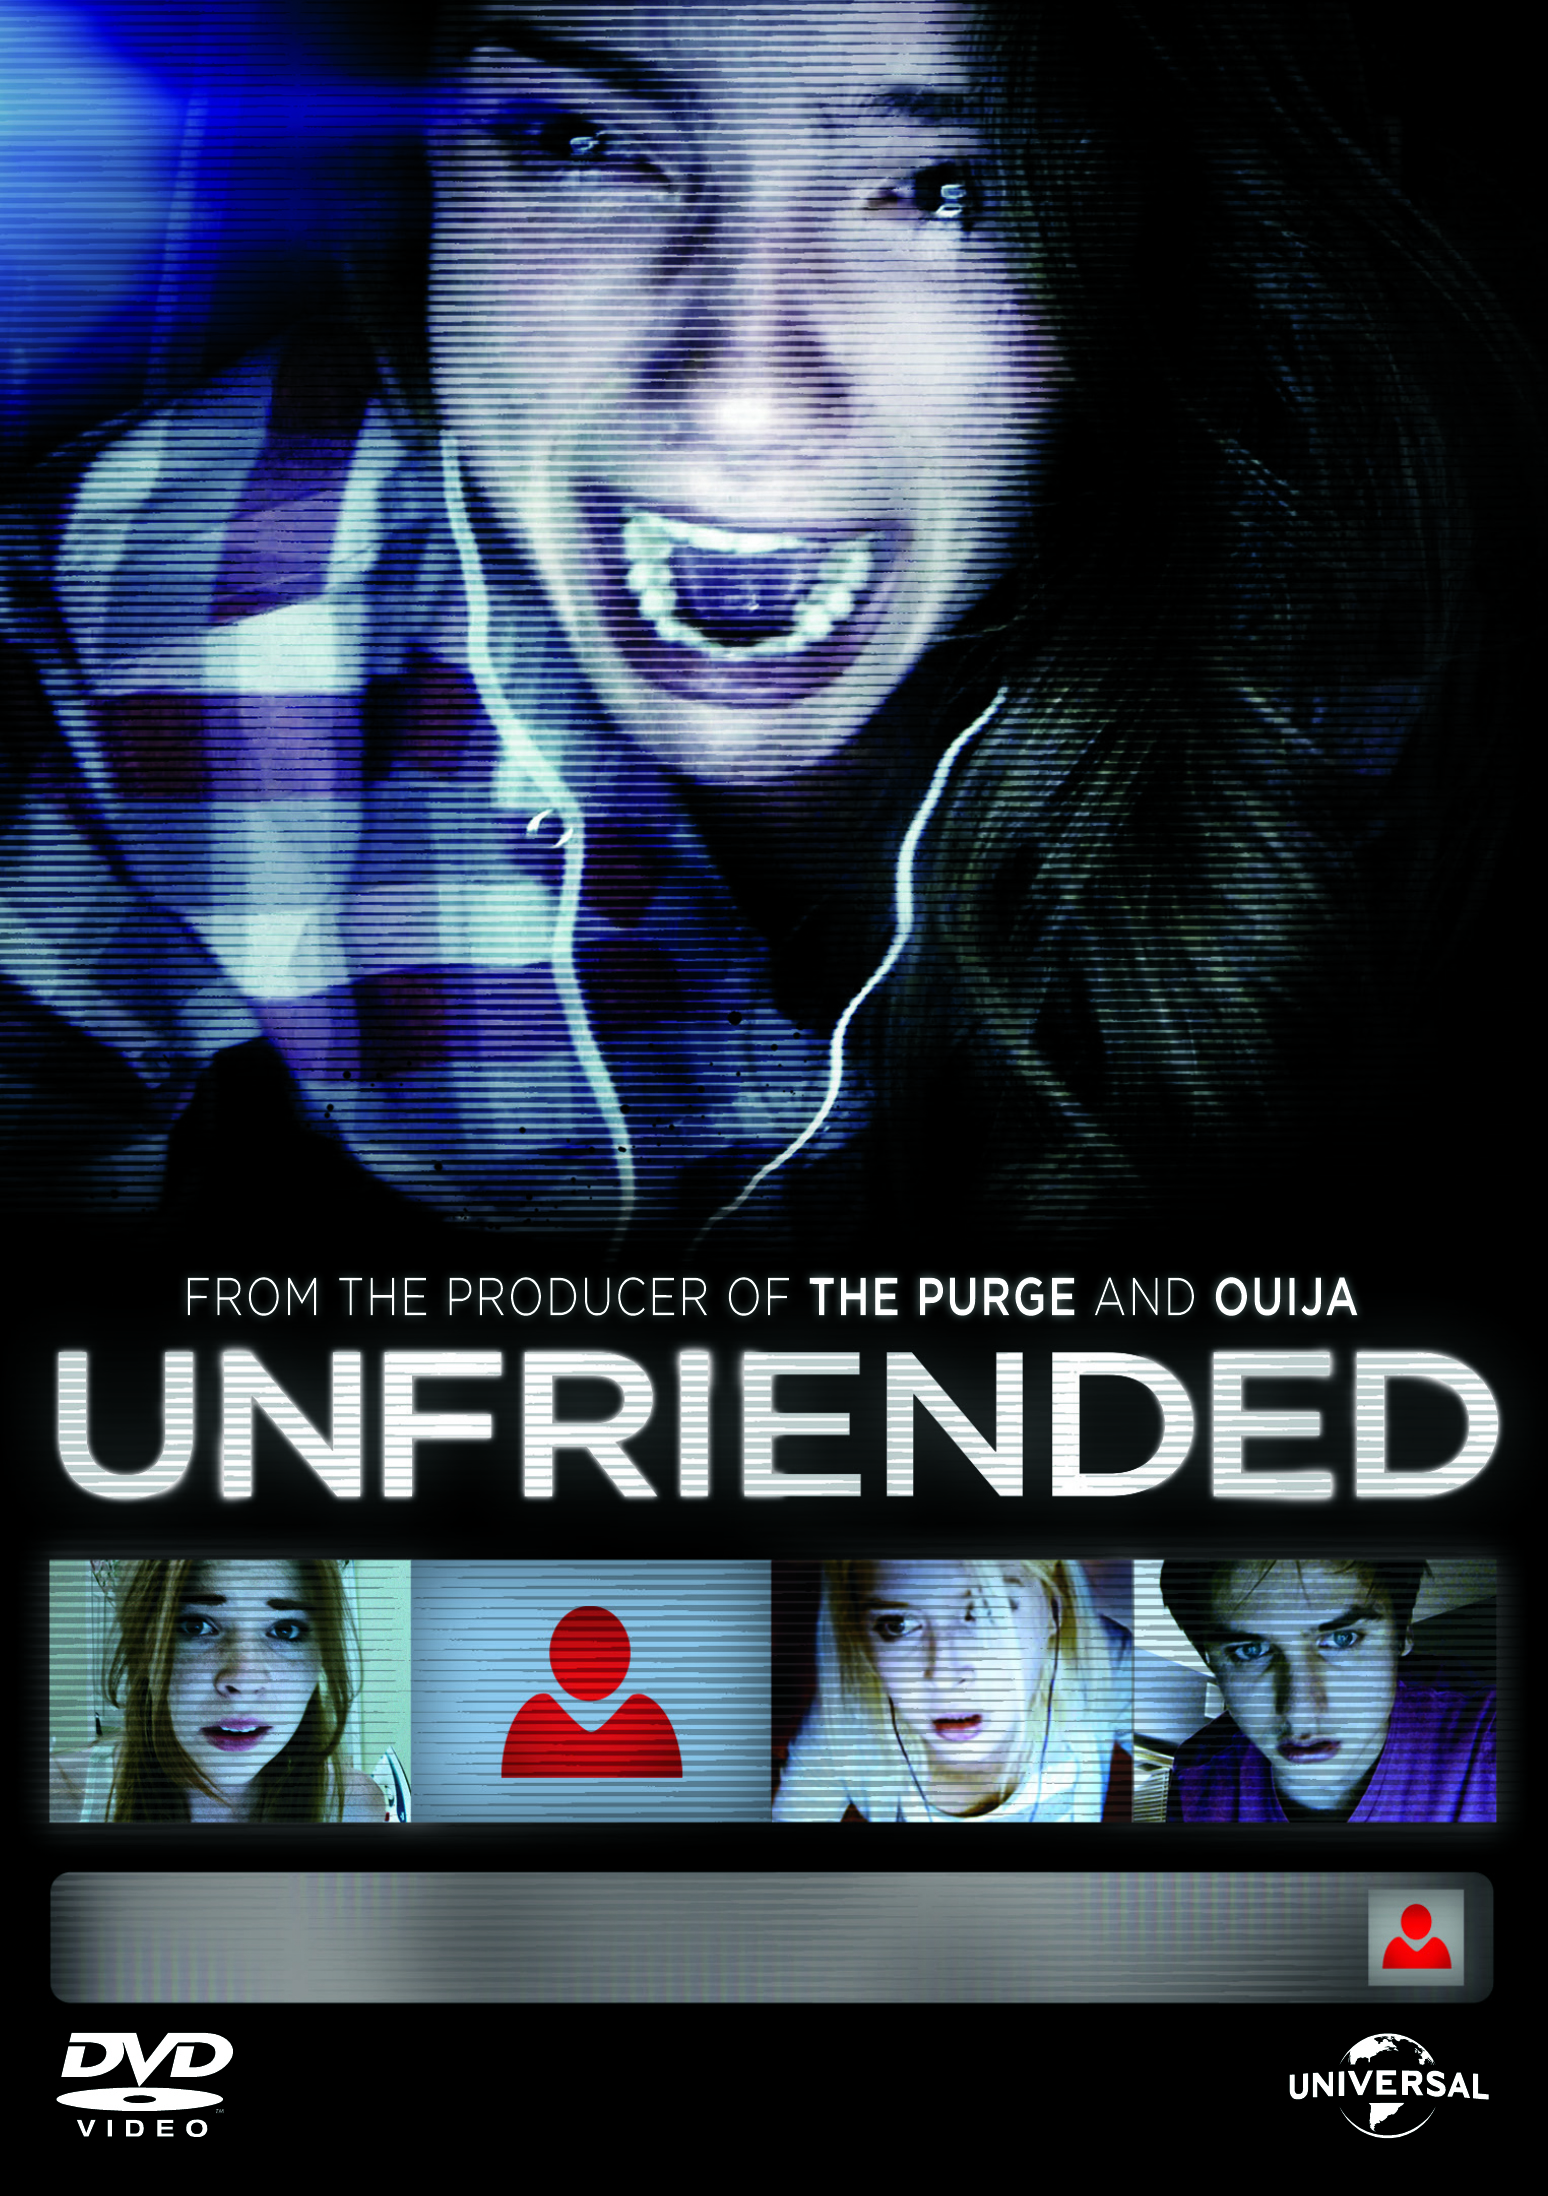 Unfriended_INT_DVD Sleeve_2D.jpg